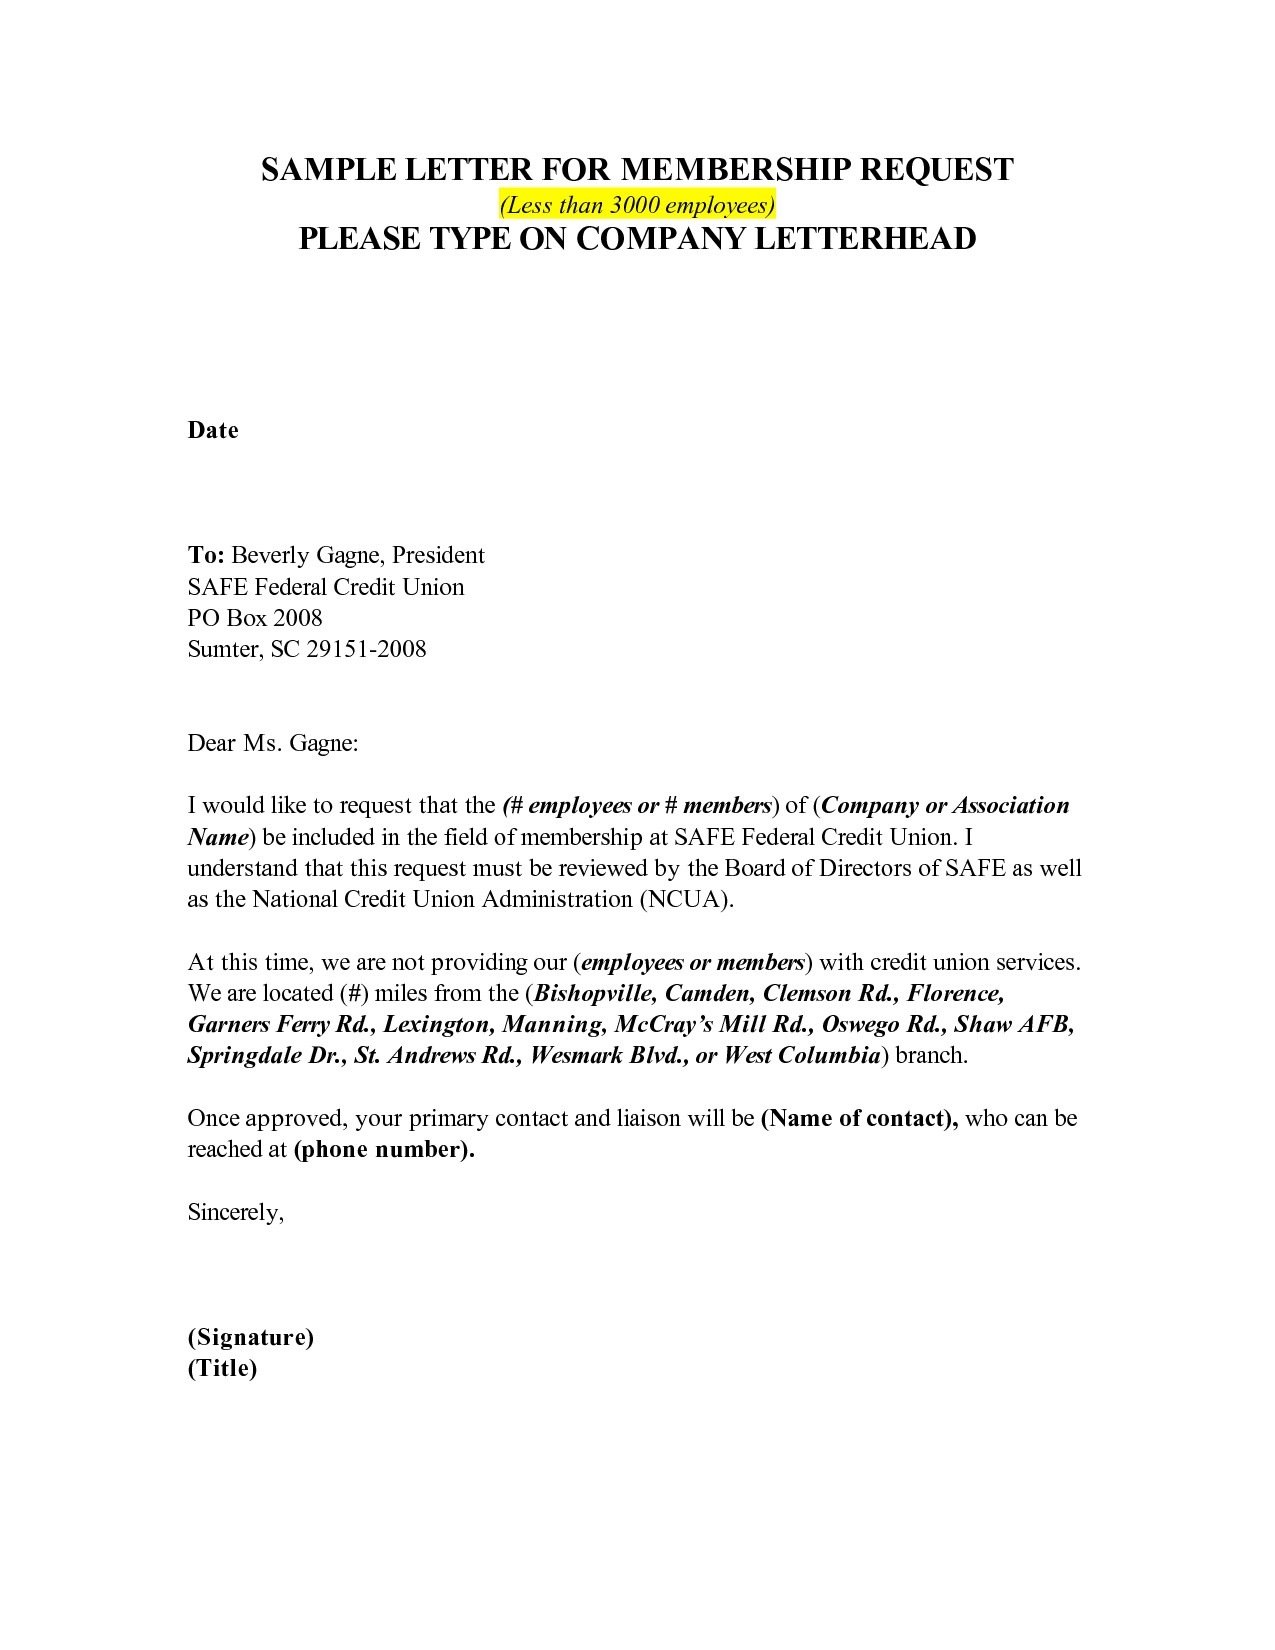 Contract Cancellation Letter Template Free - Gym Membership Cancellation Letter Sample Best 9 Cancel Gym